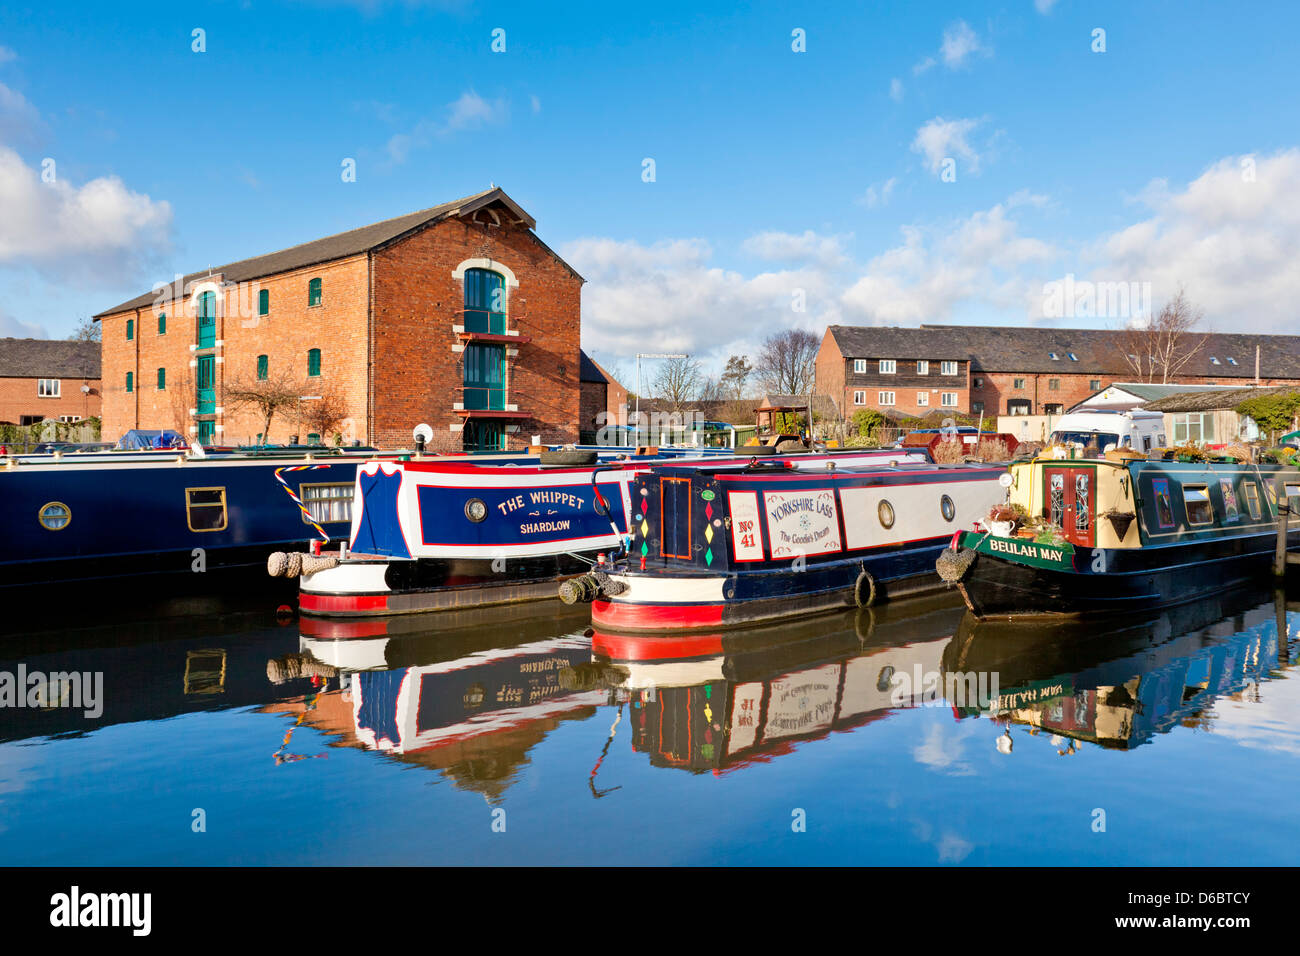 Narrow boats on the Trent and Mersey canal Shardlow  Derbyshire England UK GB EU Europe - Stock Image